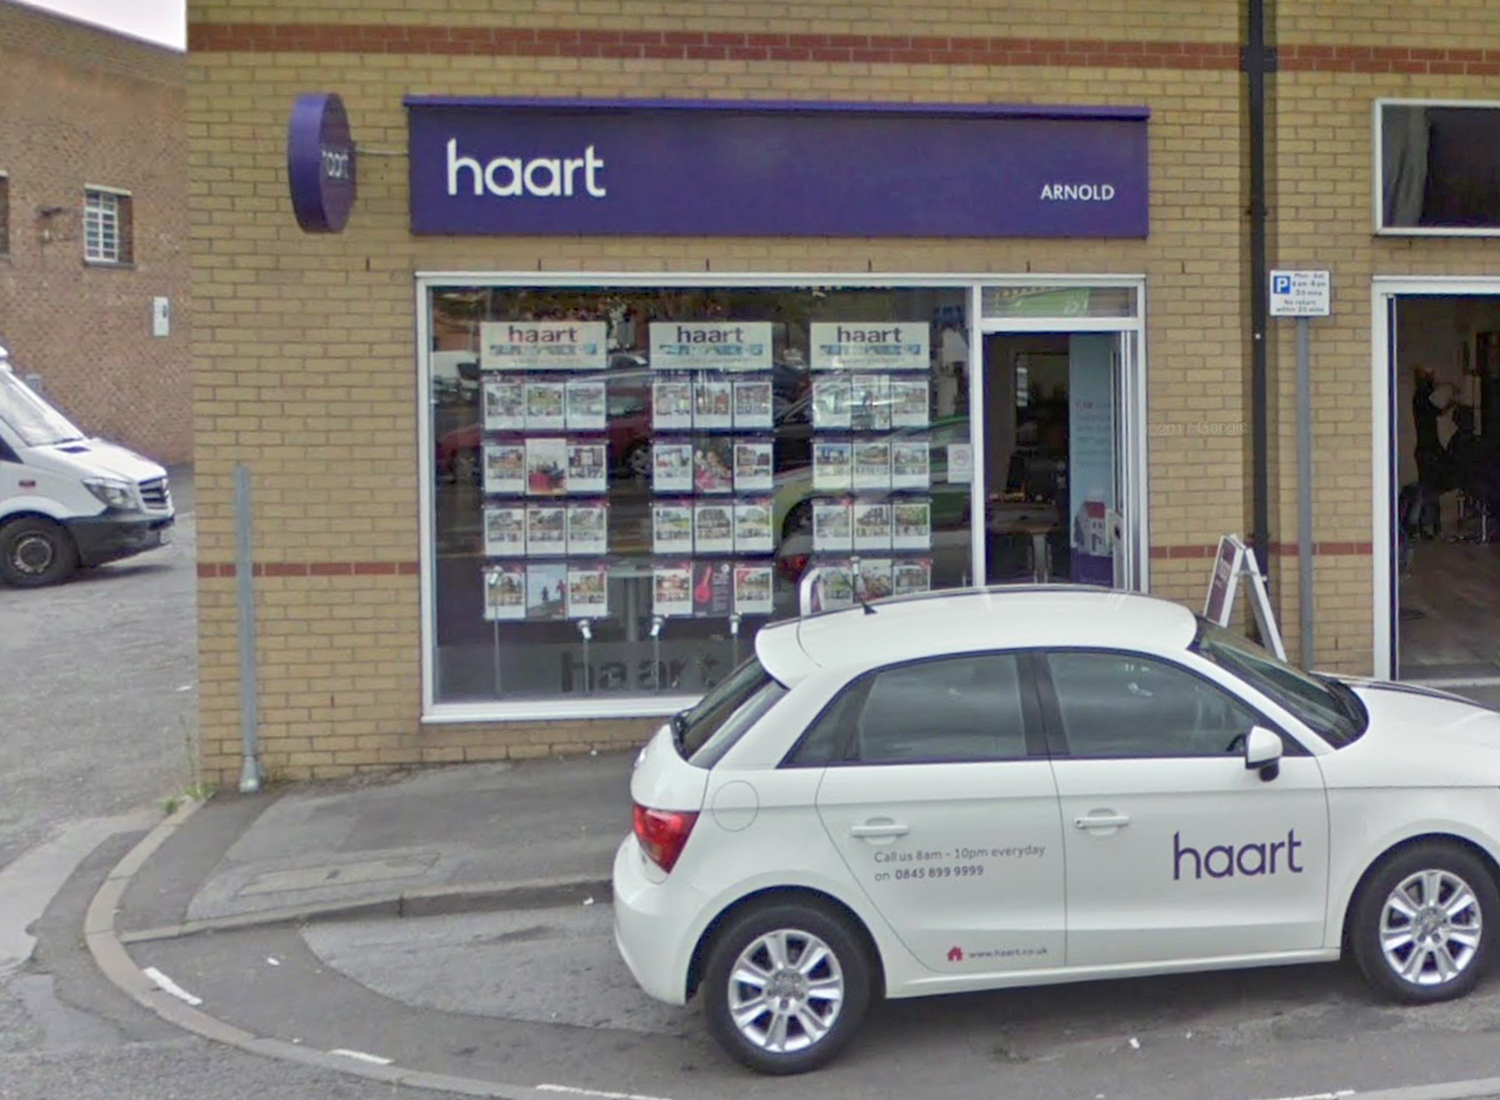 haart estate agents Arnold - Arnold, Nottinghamshire NG5 7DX - 01159 268877 | ShowMeLocal.com